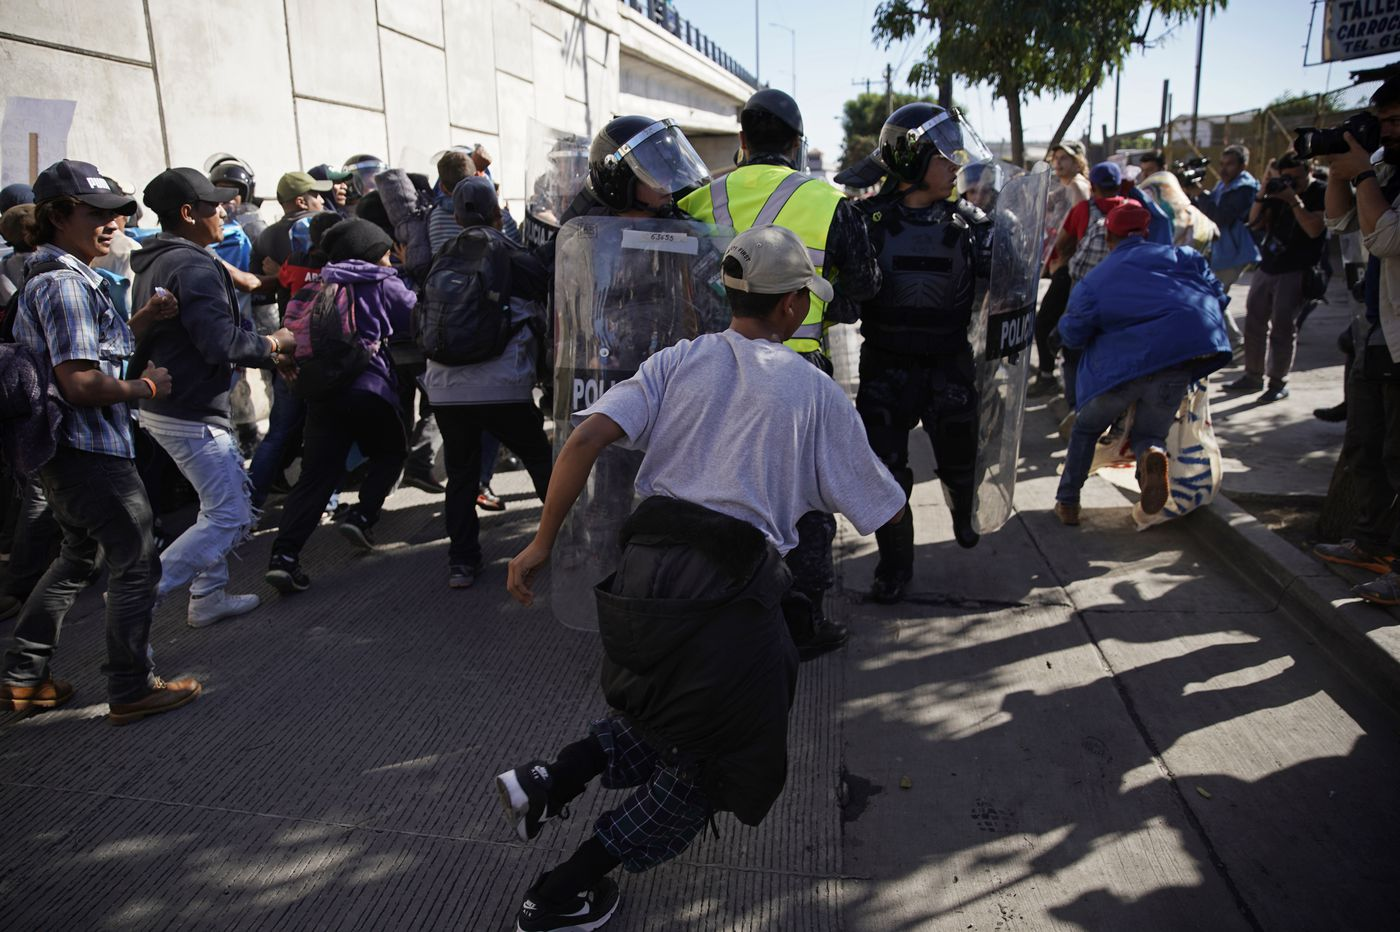 U.S. agents fire tear gas as some migrants try to breach fence